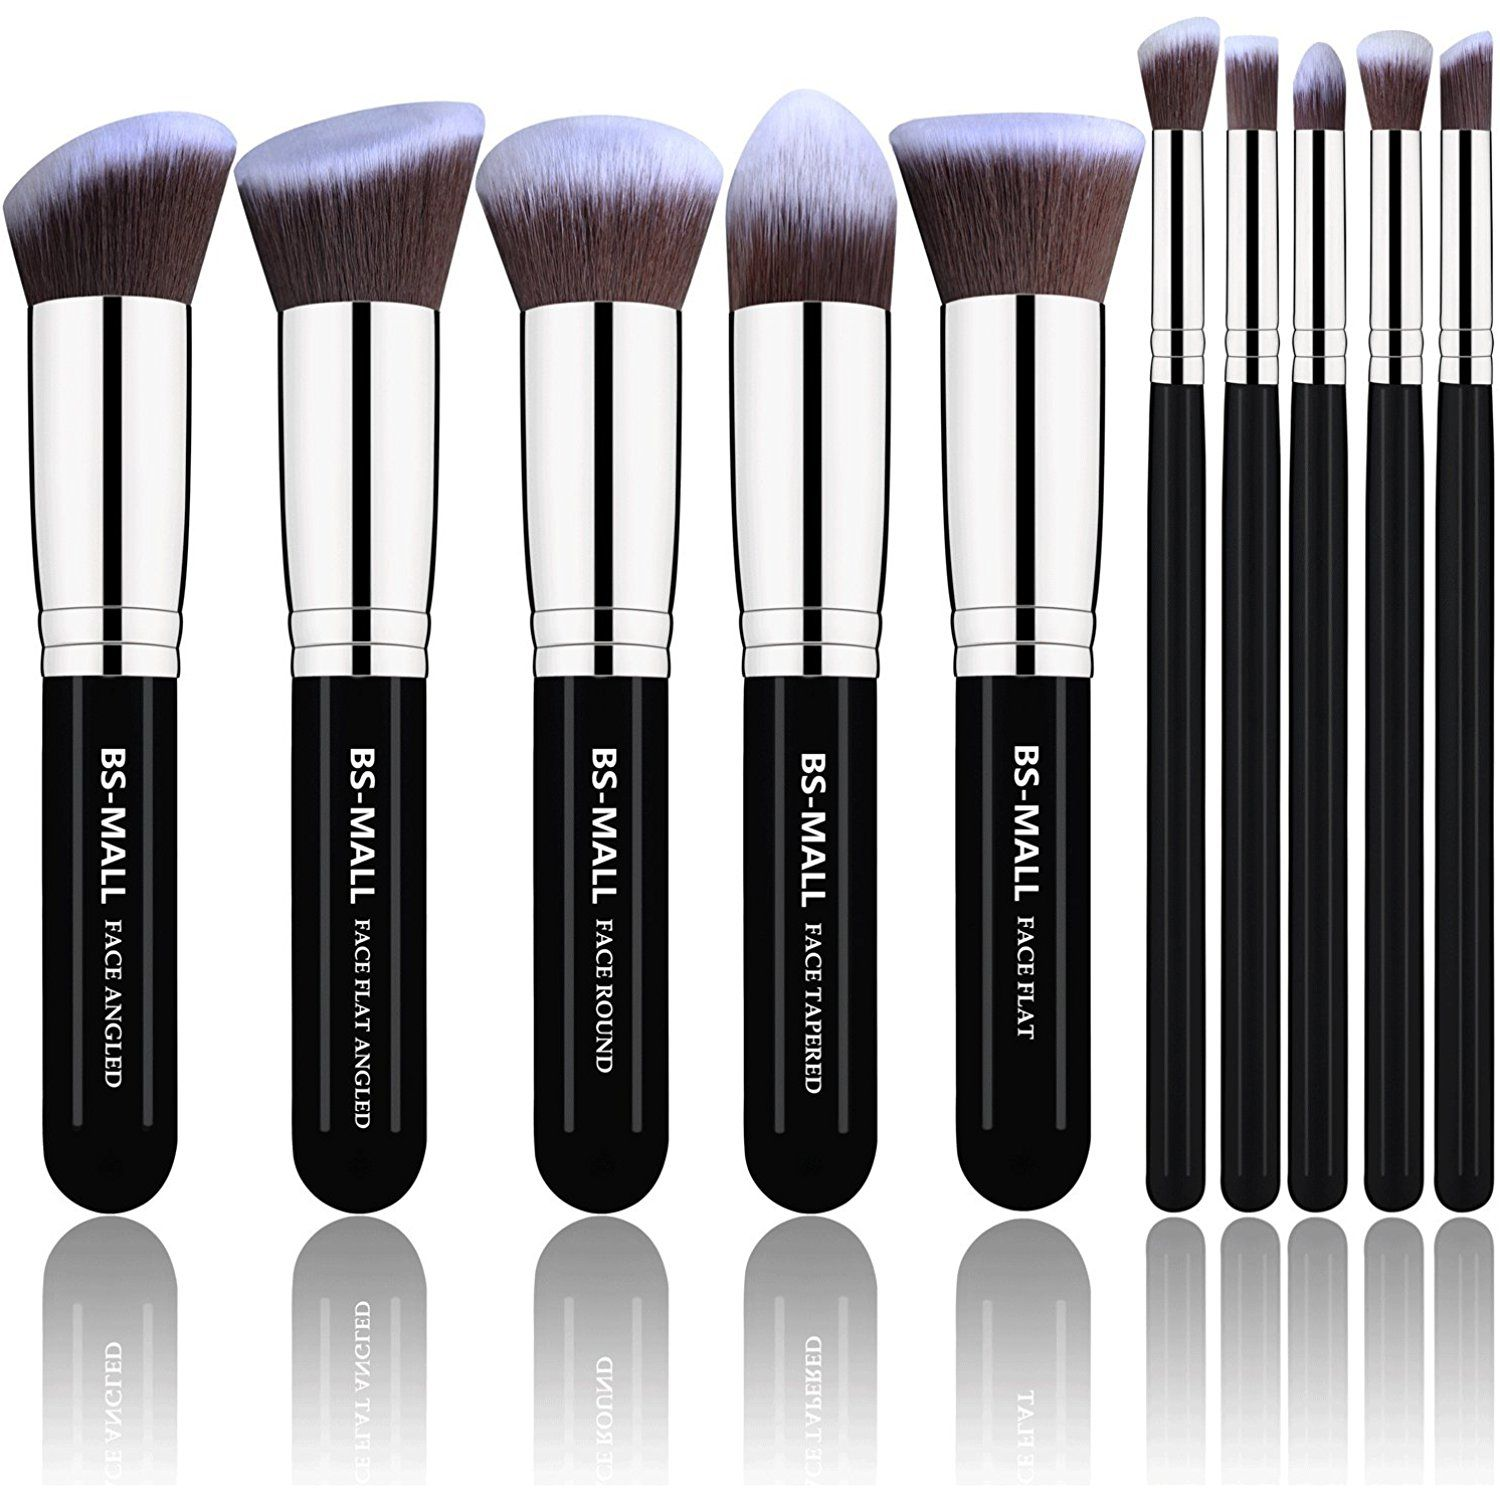 BSMALL(TM) Makeup Brushes Premium Makeup Brush Set